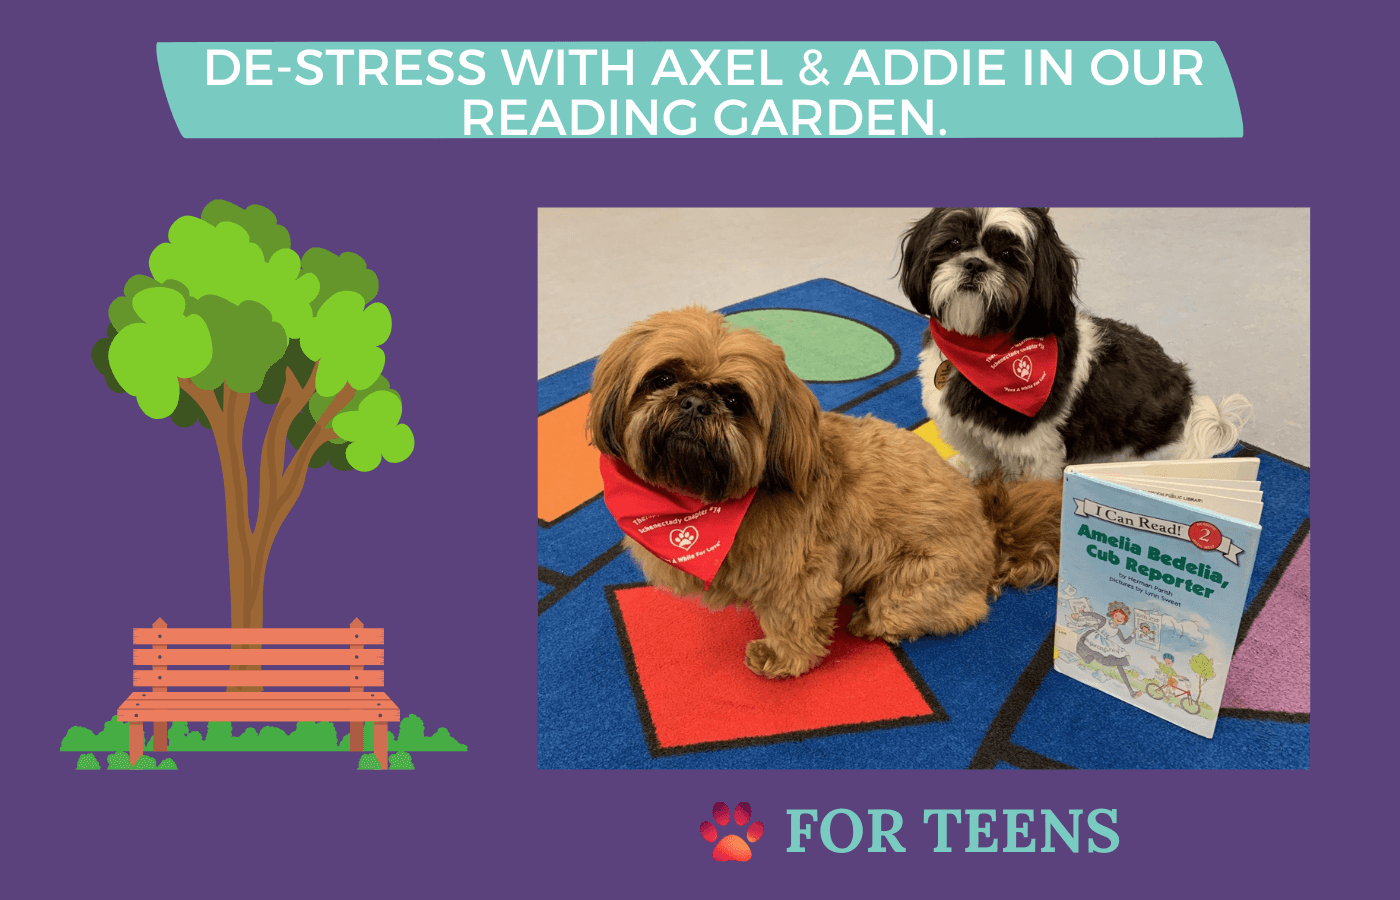 teens de-stress with therapy dogs in our reading garden